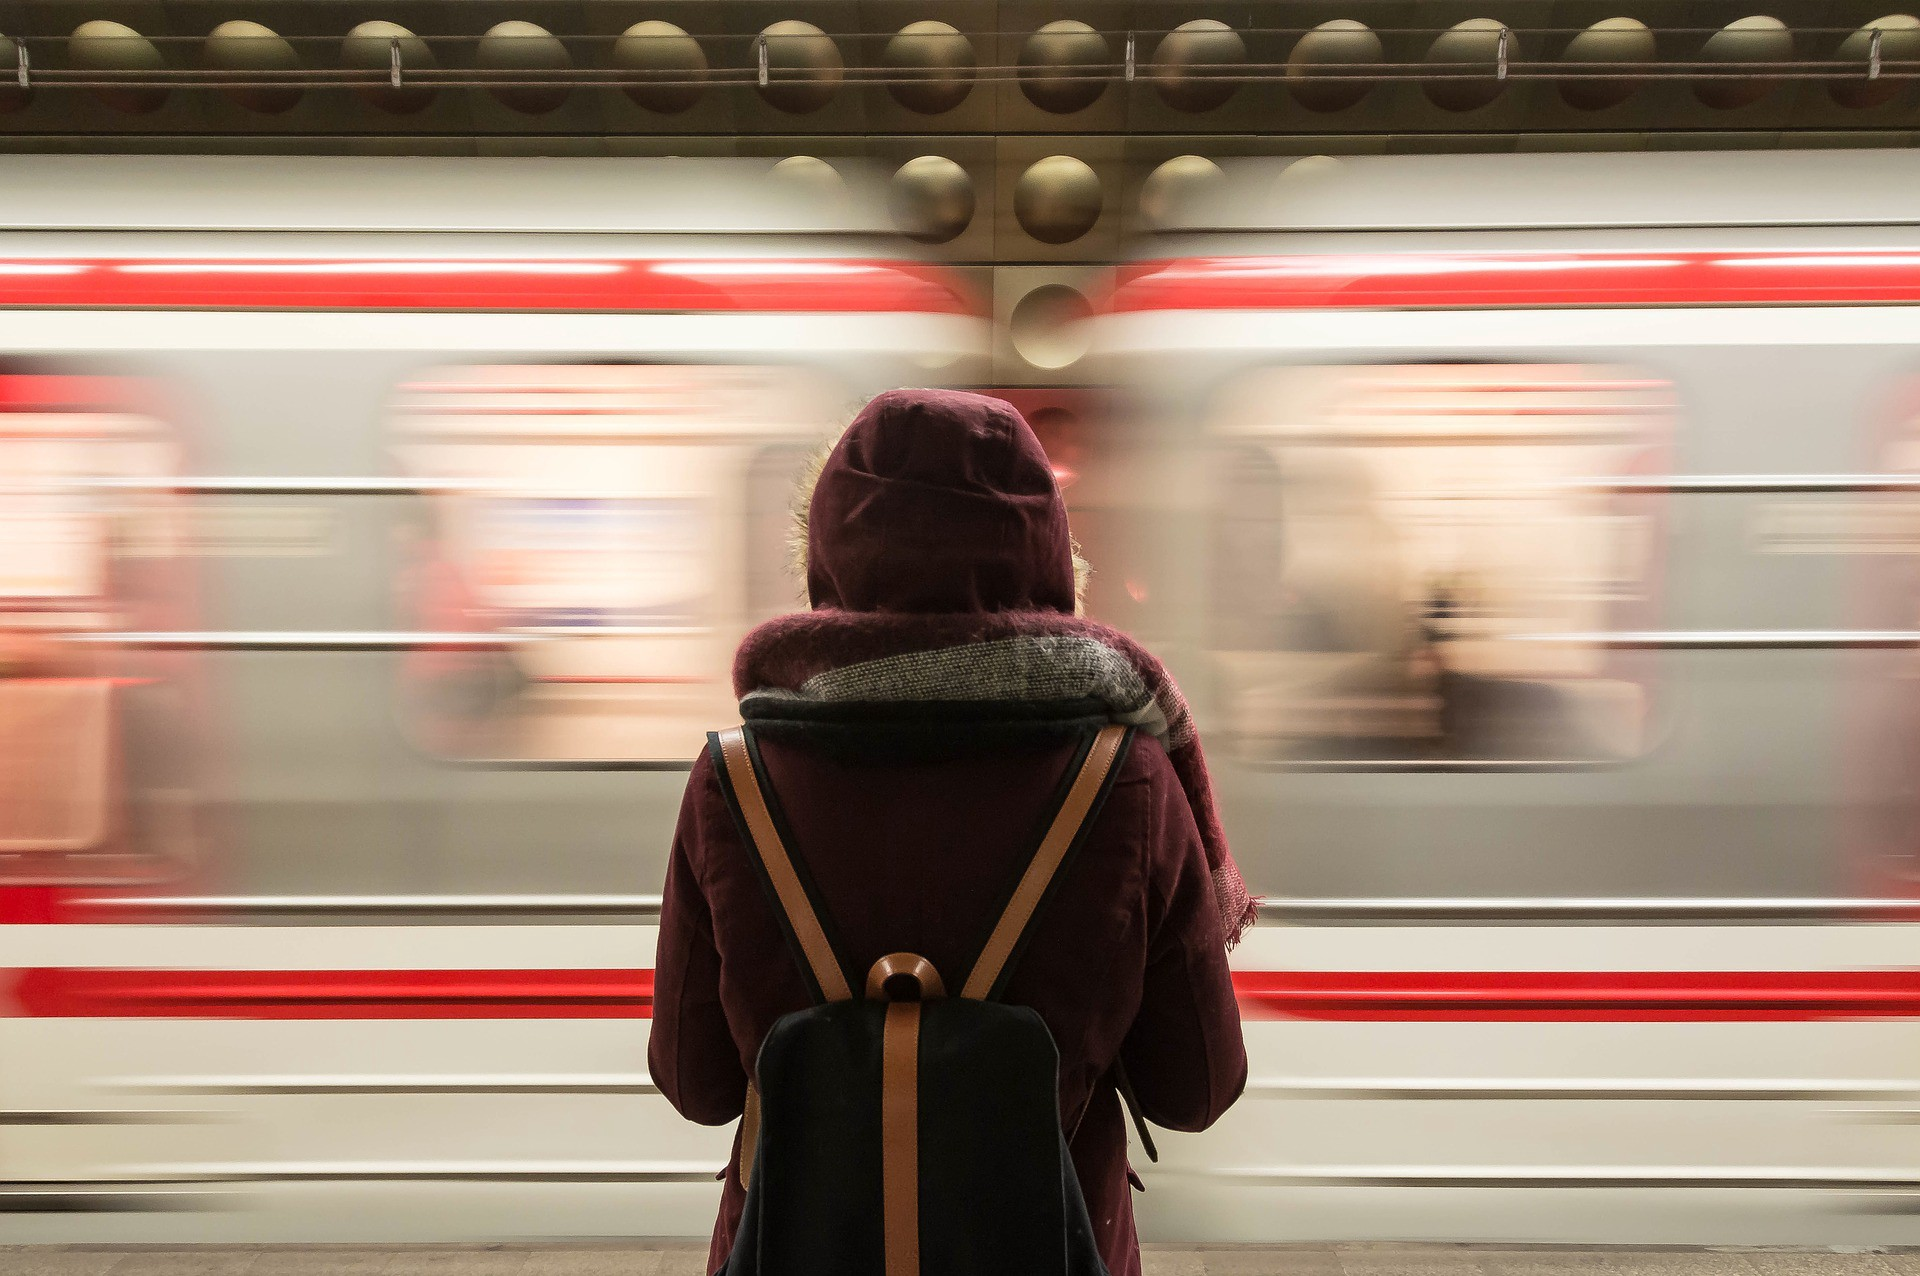 Well lit photo of the back of a person in deep red winter coat with hood up as a train passes in front of them at a station.